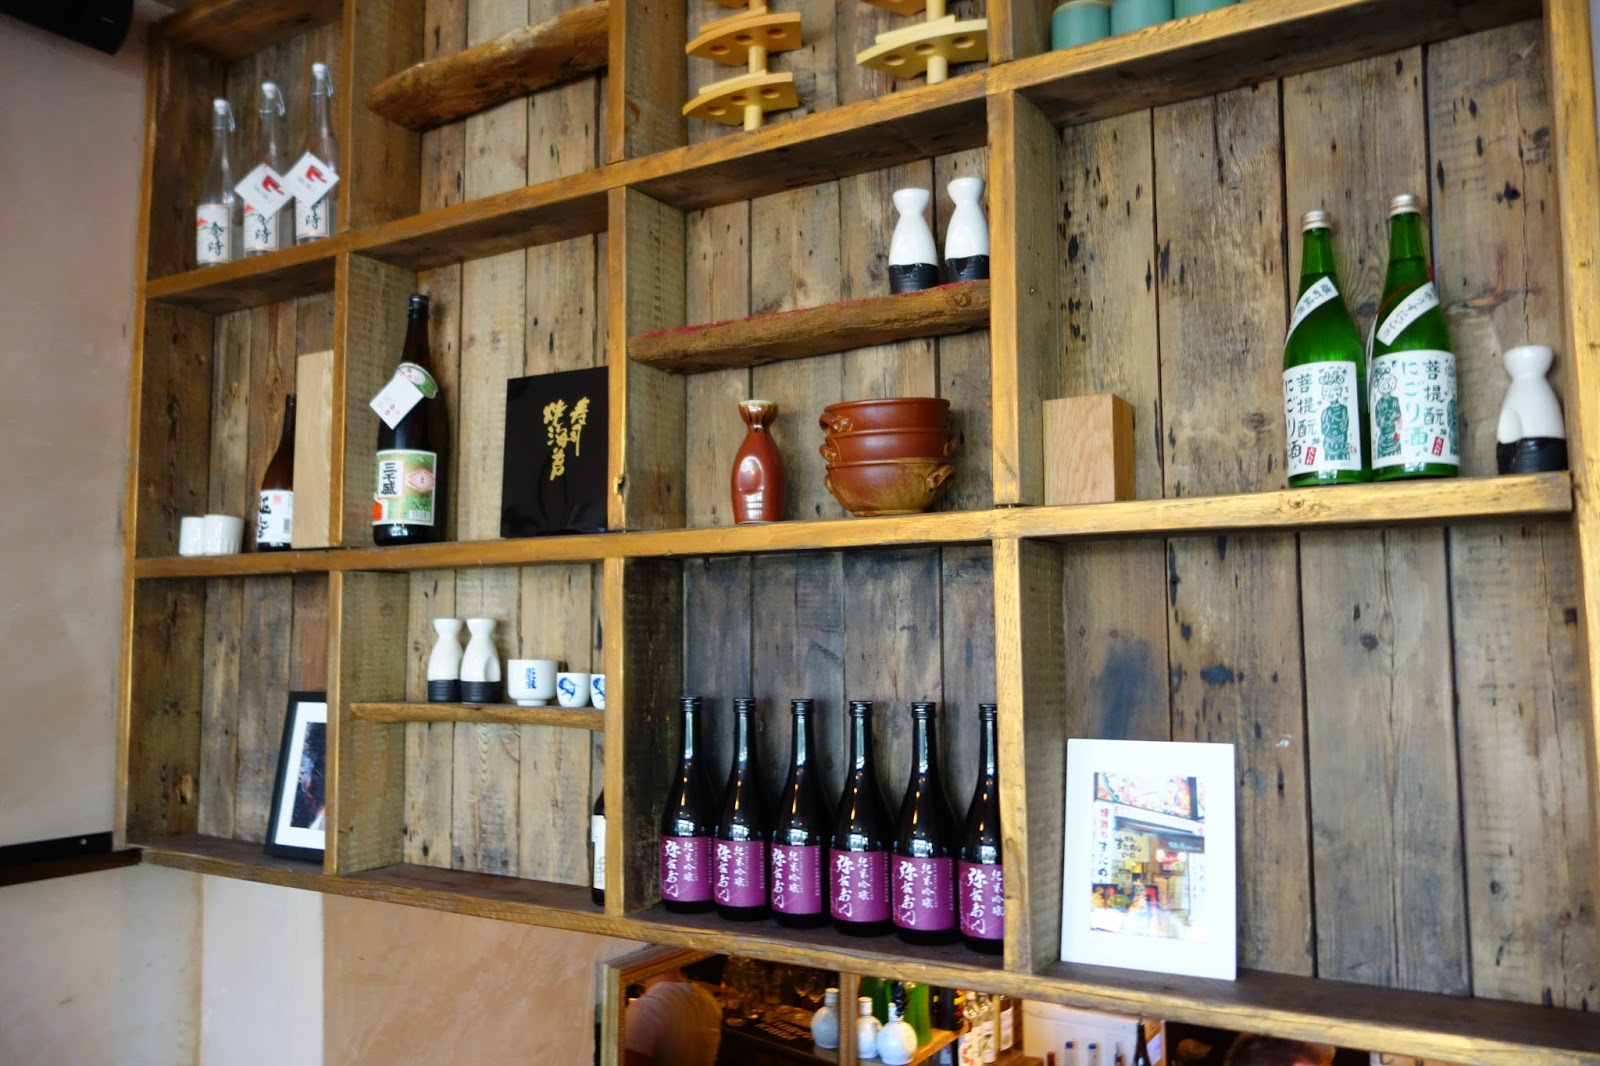 wooden shelves with bottles on